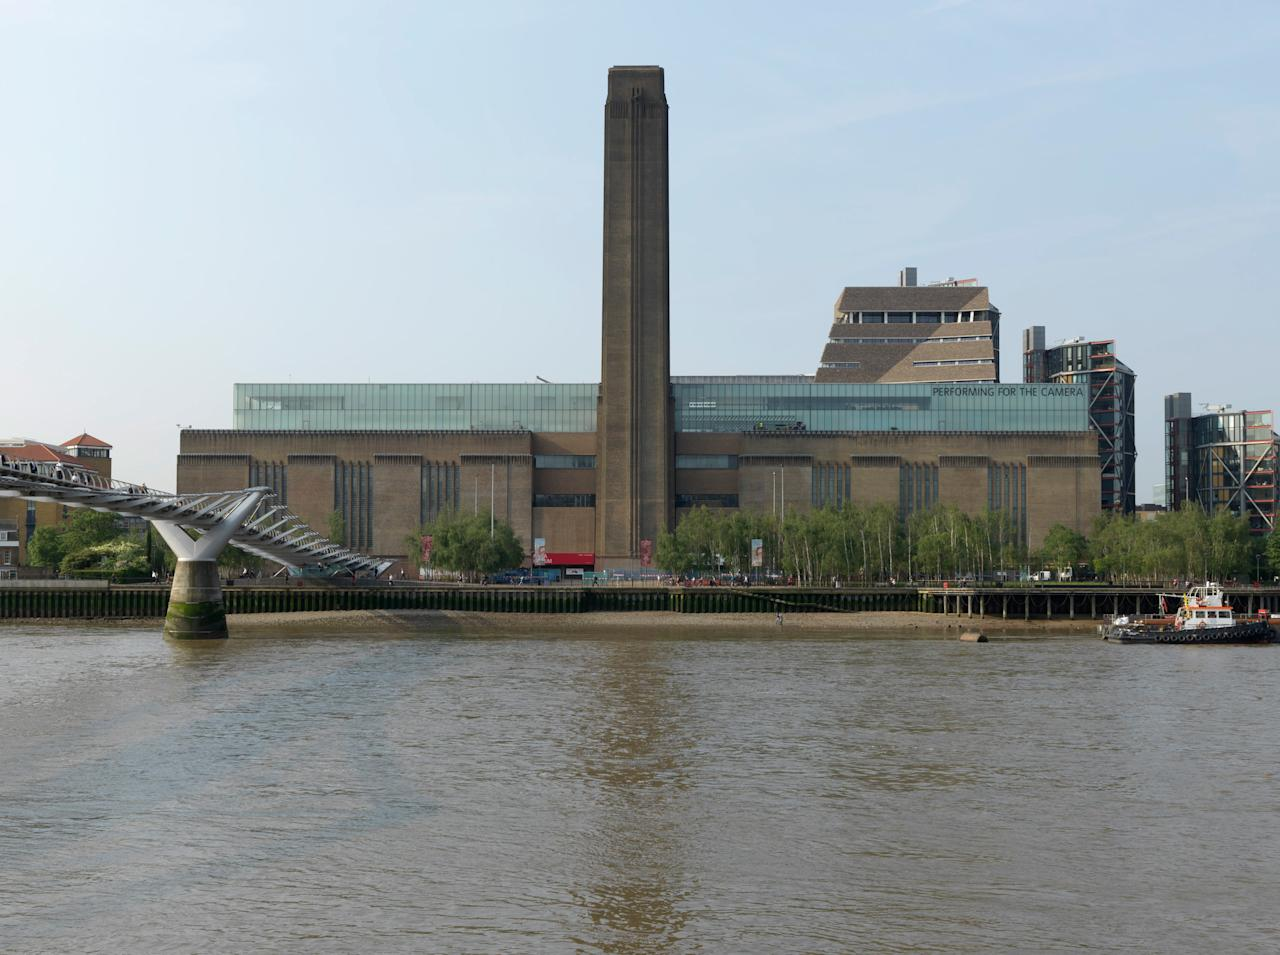 <p><strong>Zoom out. What's this place all about?</strong><br> This former oil-fired power station sits smugly in the center of the South Bank, knowing that you're interested in what's going on inside. It's filled to the rafters with paintings and sculptures by the likes of Picasso, Dali, Warhol, and Rothko, all set off perfectly by that gritty industrial interior. The new, twisted brick Switch House extension has doubled the hanging space and does a nice line in river views from the top floor.</p> <p><strong>What will we find in the permanent collection?</strong><br> The collections span 1500 to the present day but are split into abstract themes rather than eras—don't think too hard, just pick one and dive in. Among the vast range of works are classics, such as Sir John Everett Millais' <em>Ophelia</em> to Henry Moore's moving sculpture.</p> <p><strong>What about temporary exhibits?</strong><br> It's rare that any exhibition at Tate Modern is awaited with anything less than bated breath. Whether they're the paid shows across the mid-levels of the institution or the vast and clever commissions to take over the massive space that is the Turbine Hall, you're pretty much bound to be blown away. Of the current free shows, Kara Walker's <em>Fons Americanus</em> in the Turbine Hall (until Apr 2020) is absolutely incredible, a huge 13-meter-tall working fountain inspired by the Victoria Memorial—not a celebration of the British Empire, rather a wondrous critique. Of the ticketed shows Olafur Eliasson's <em>In Real Life</em> collects a series of colorful and captivating installations using rainbows and shadows, geometry and motion to embrace our senses and engage with topical issues of climate change, energy and migration. (Until Jan 2020, tickets around $20)</p> <p><strong>What did you make of the crowd?</strong><br> Art lovers, trendy students, families and everyone in between, the Tate crowd is packed and varied and any given day you'll find numerous tourists from everyw